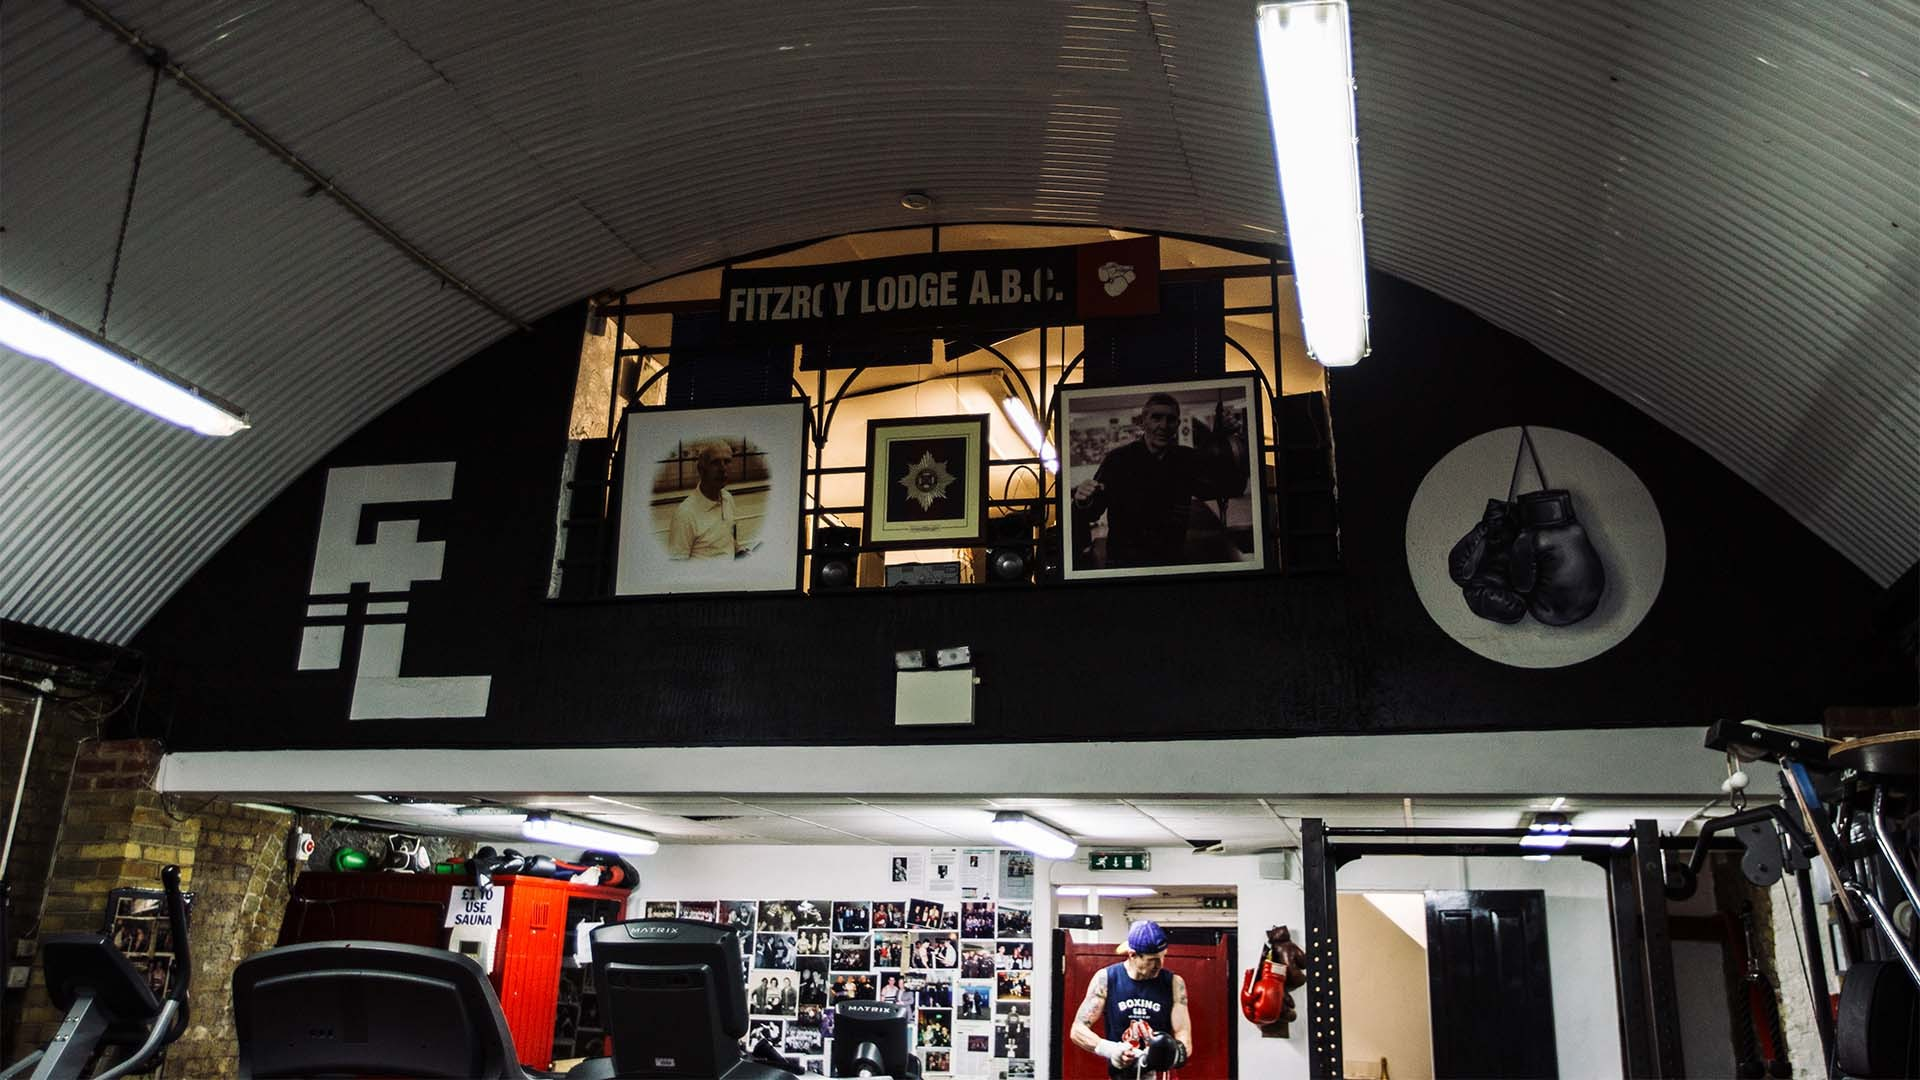 Fitzroy Lodge Boxing Club